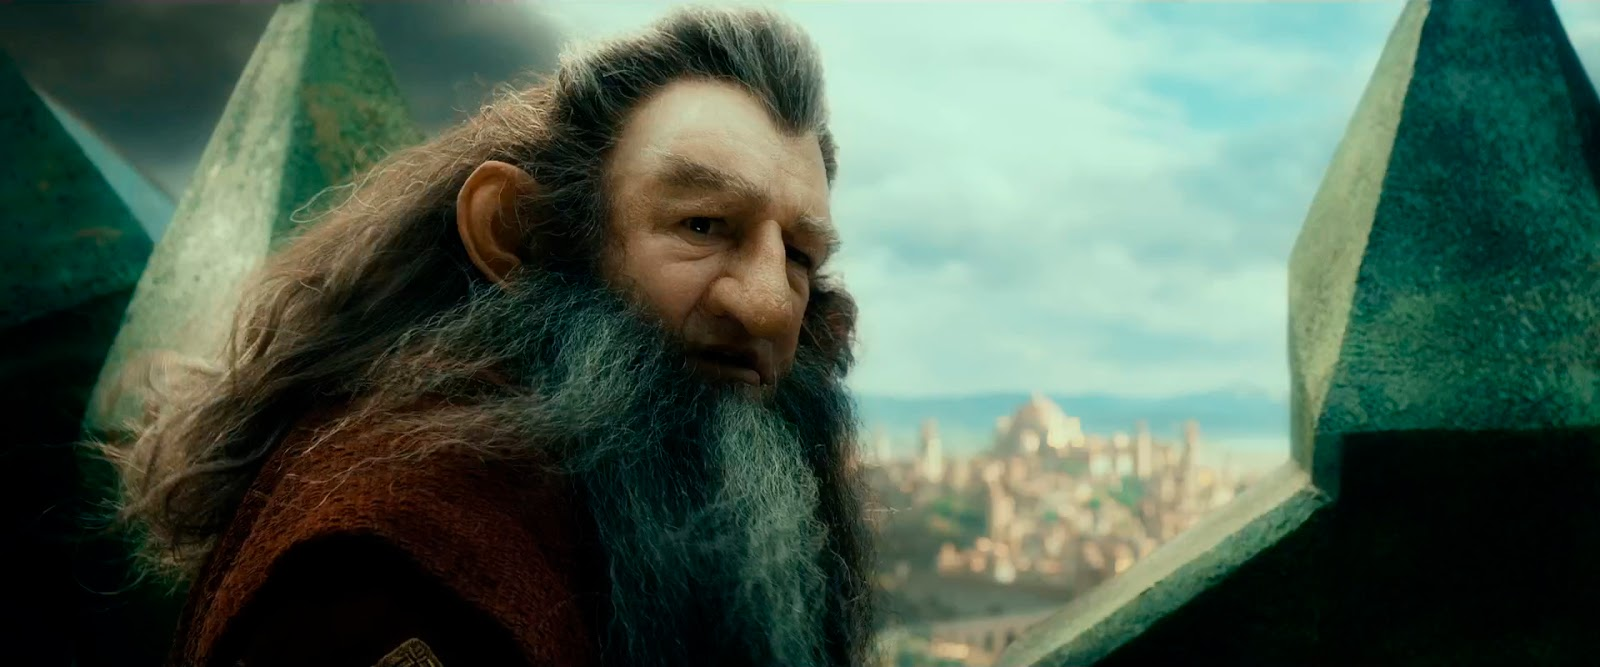 El Hobbit 1 (2012) HD 1080p Latino captura 1